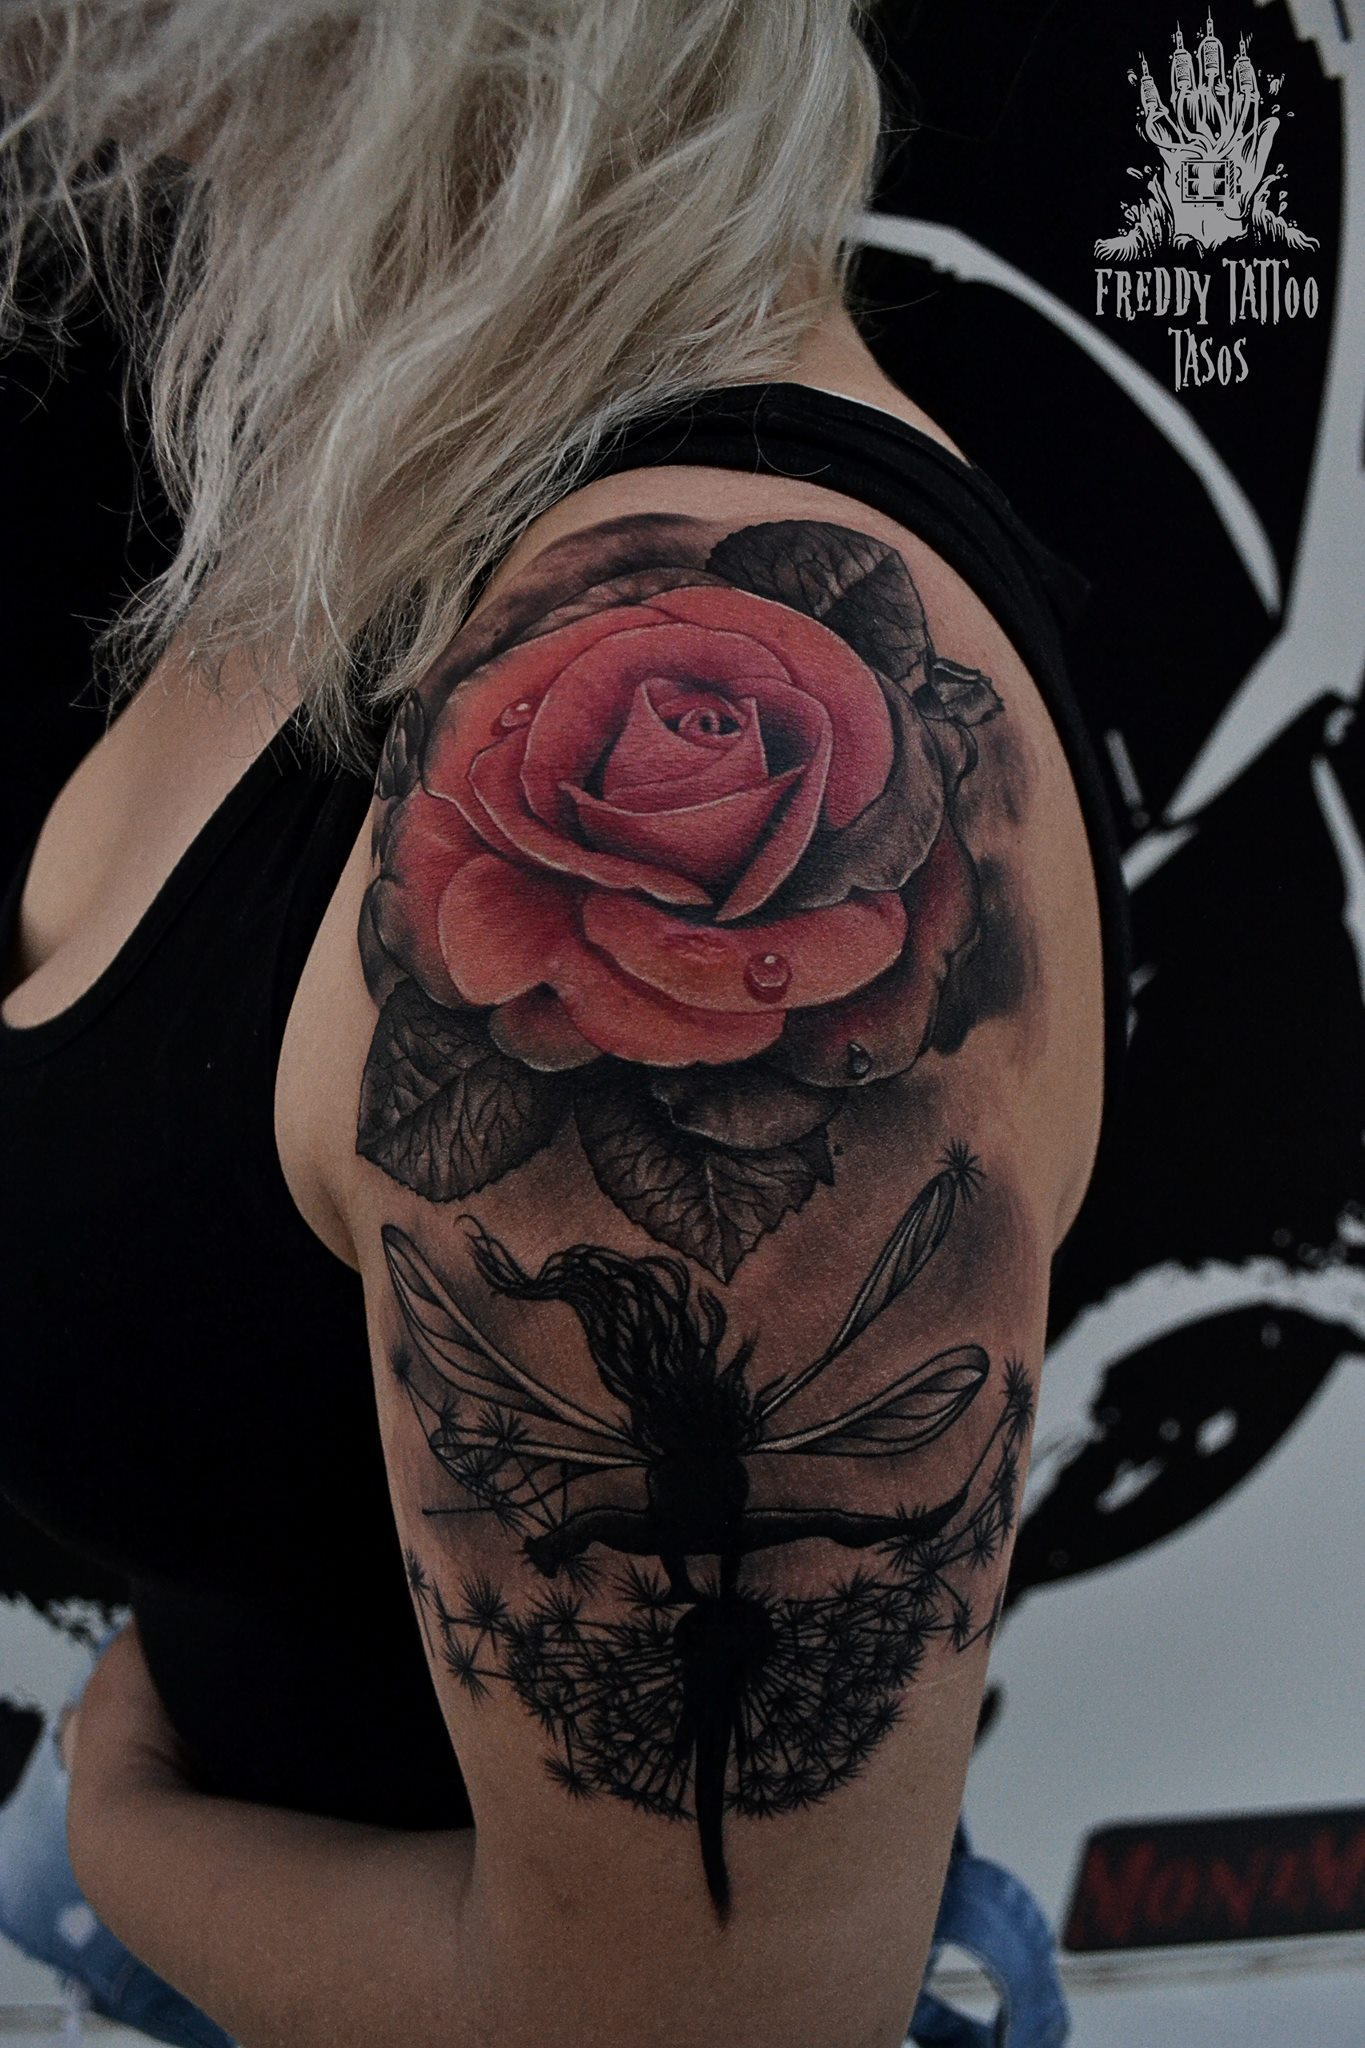 Tasos Freddy Tattoo Studio – Tattoo 200